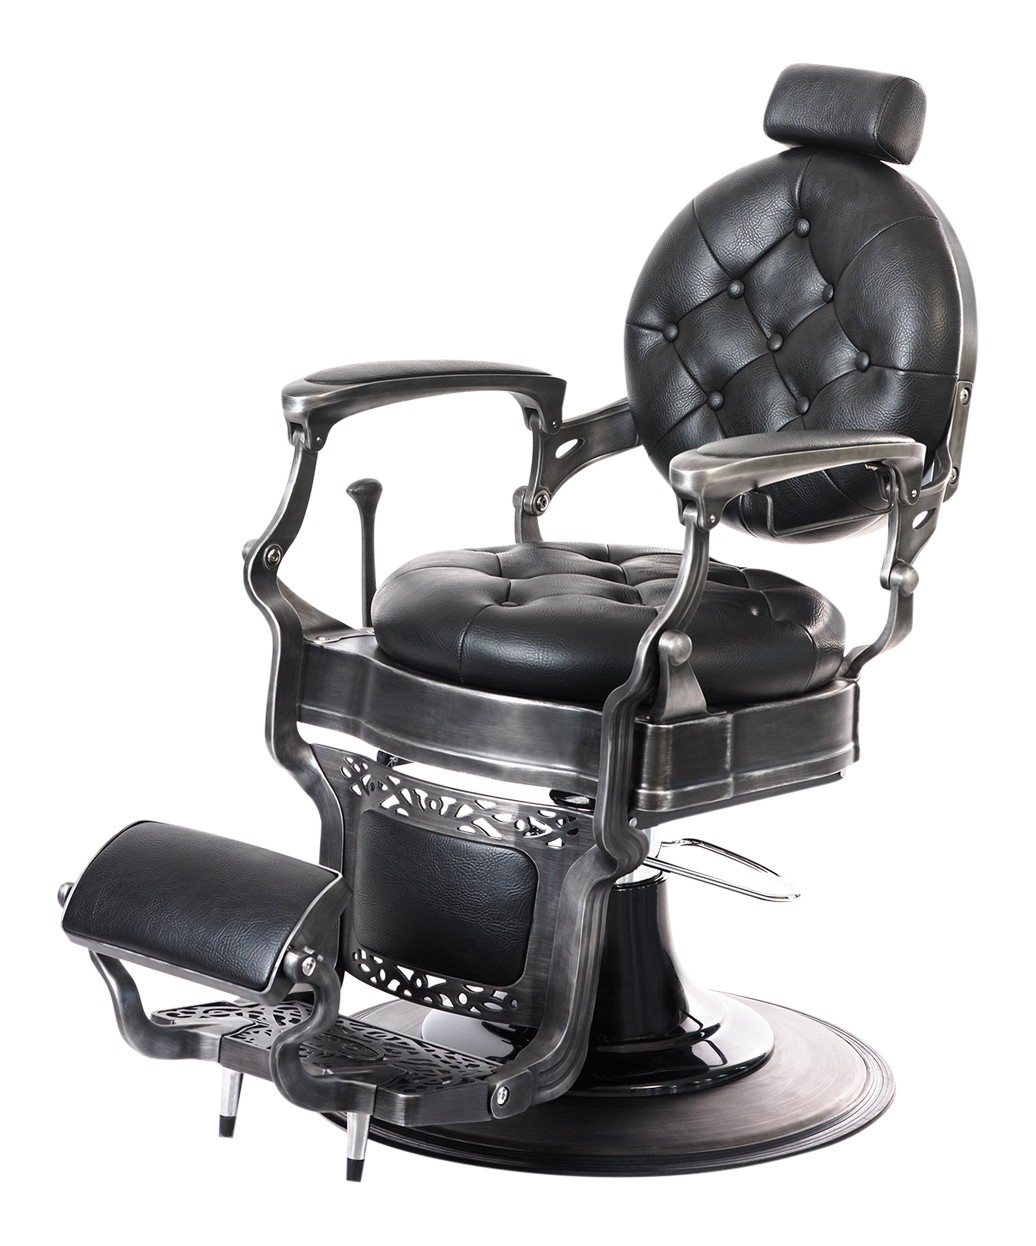 Old Barber Chairs >> Alesso Professional Barber Chair